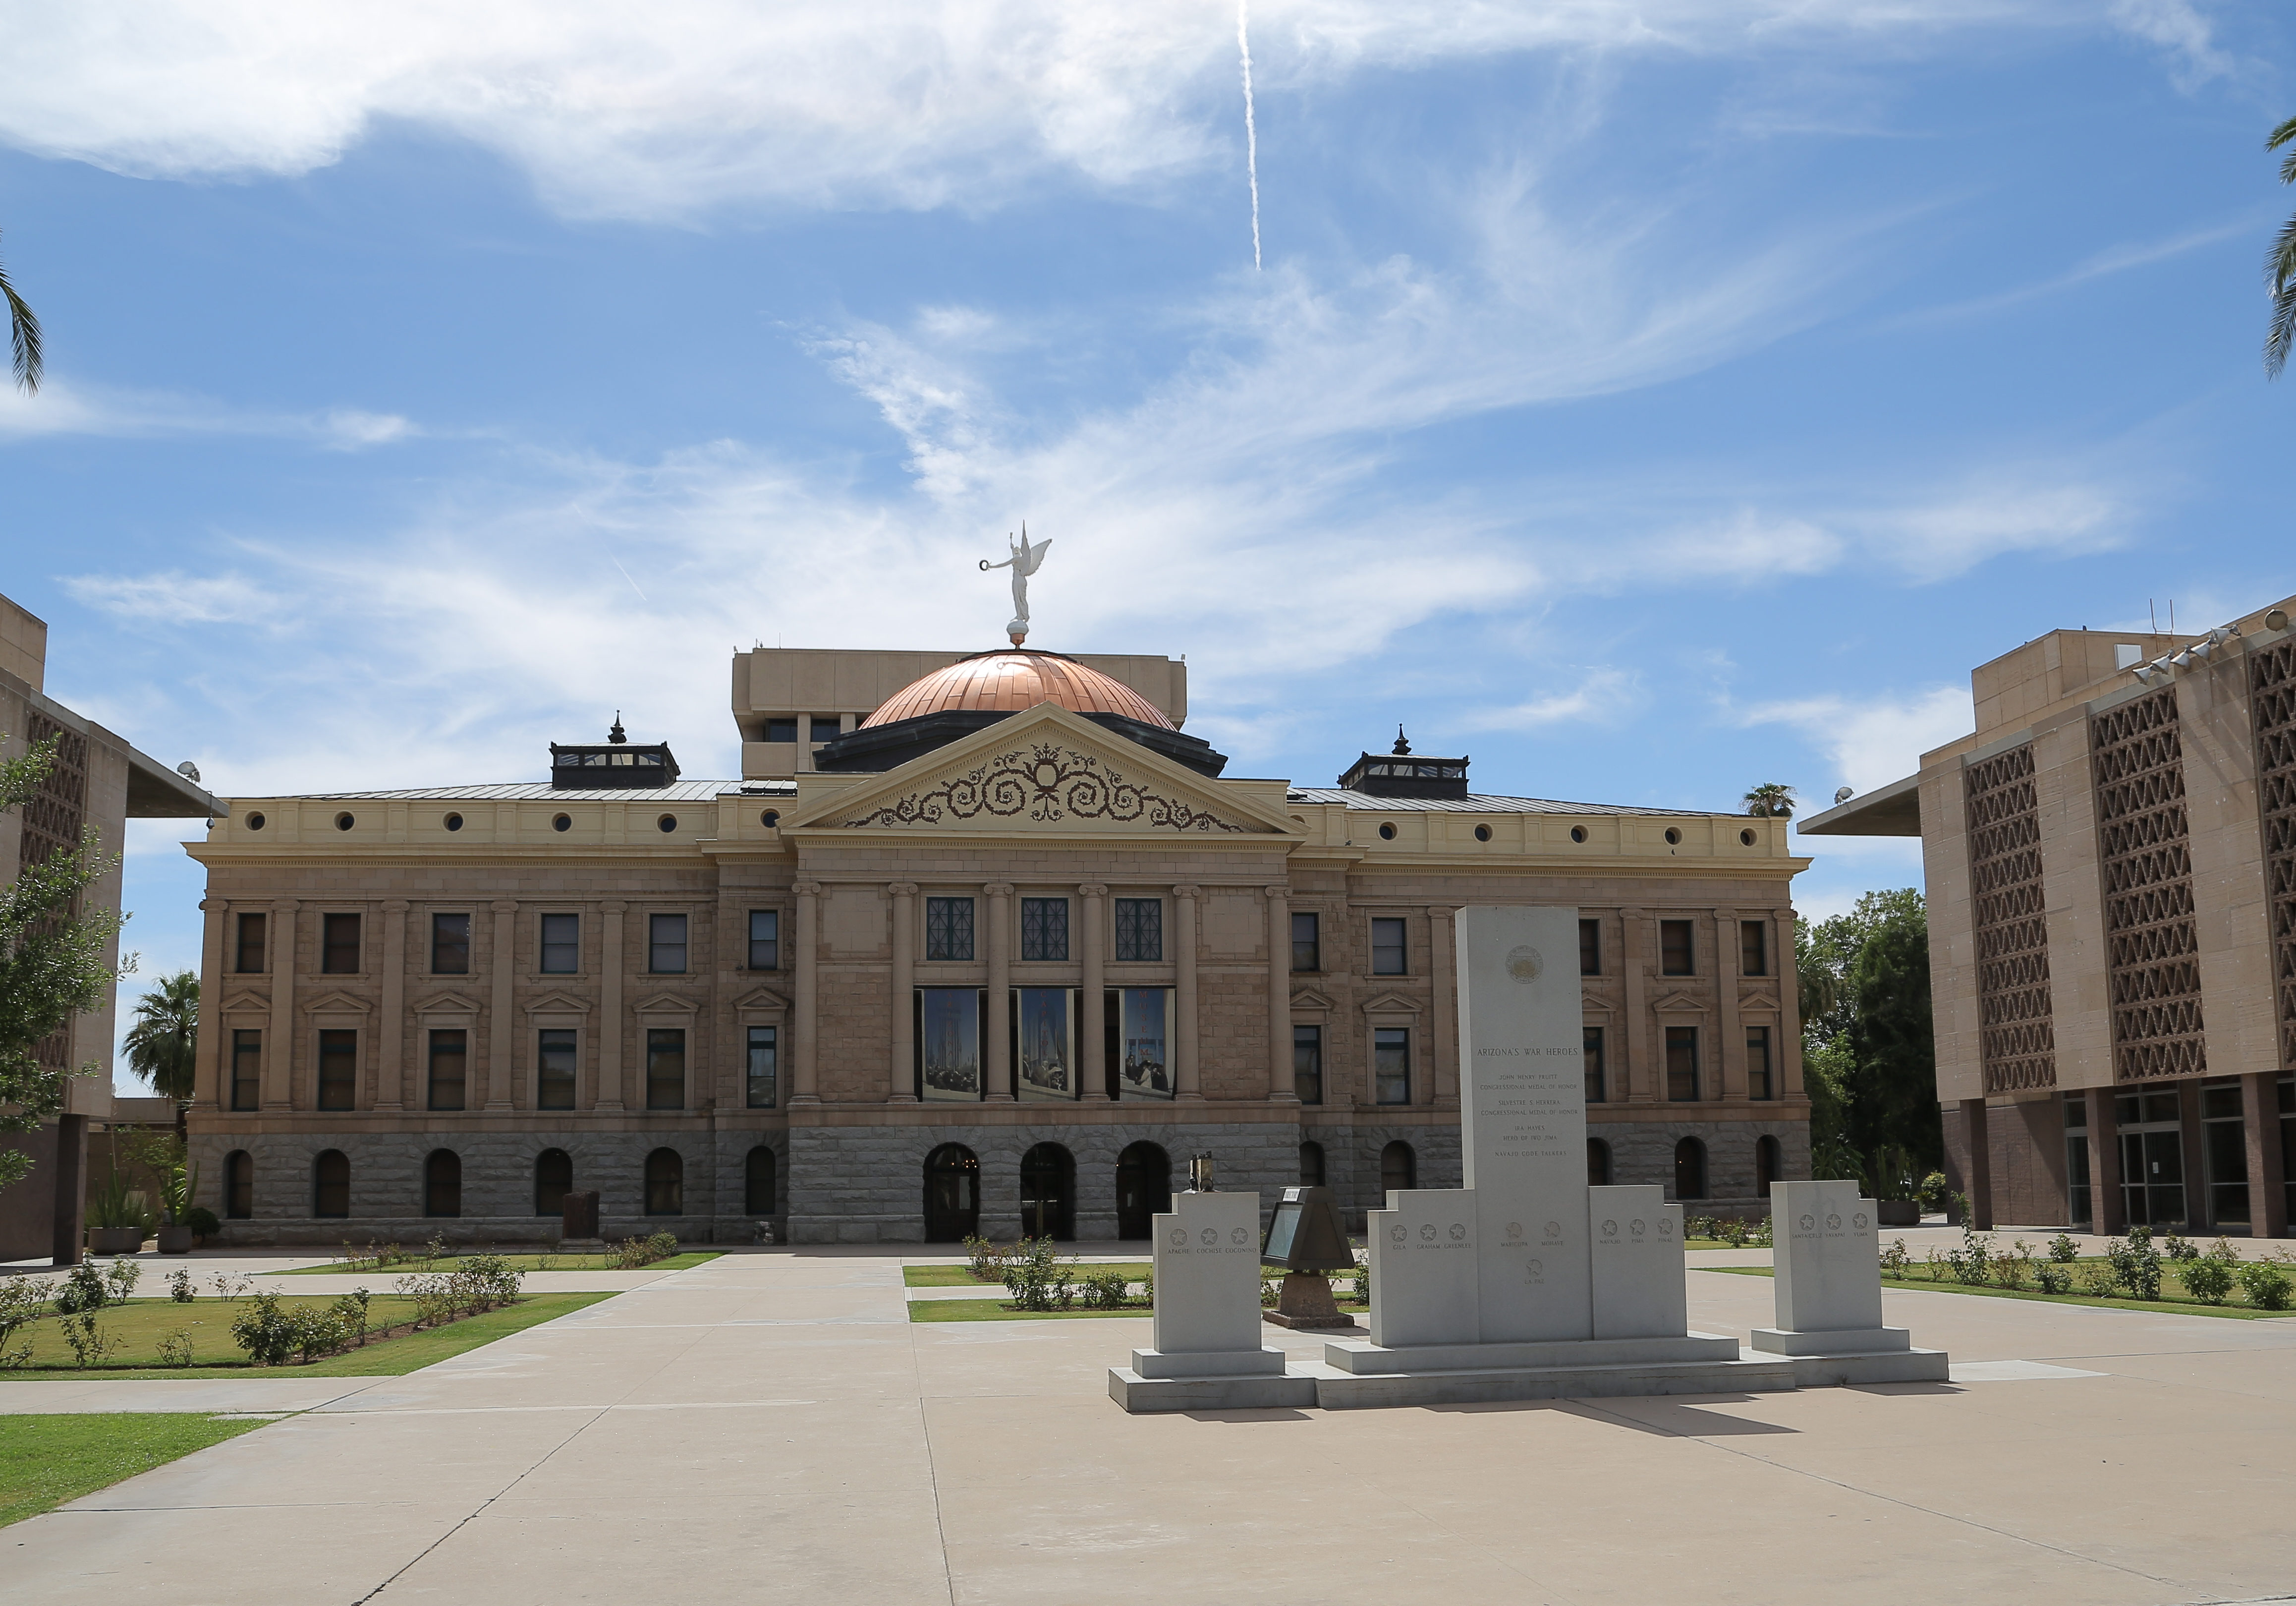 Arizona State Capitol, Phoenix, Arizona, USA